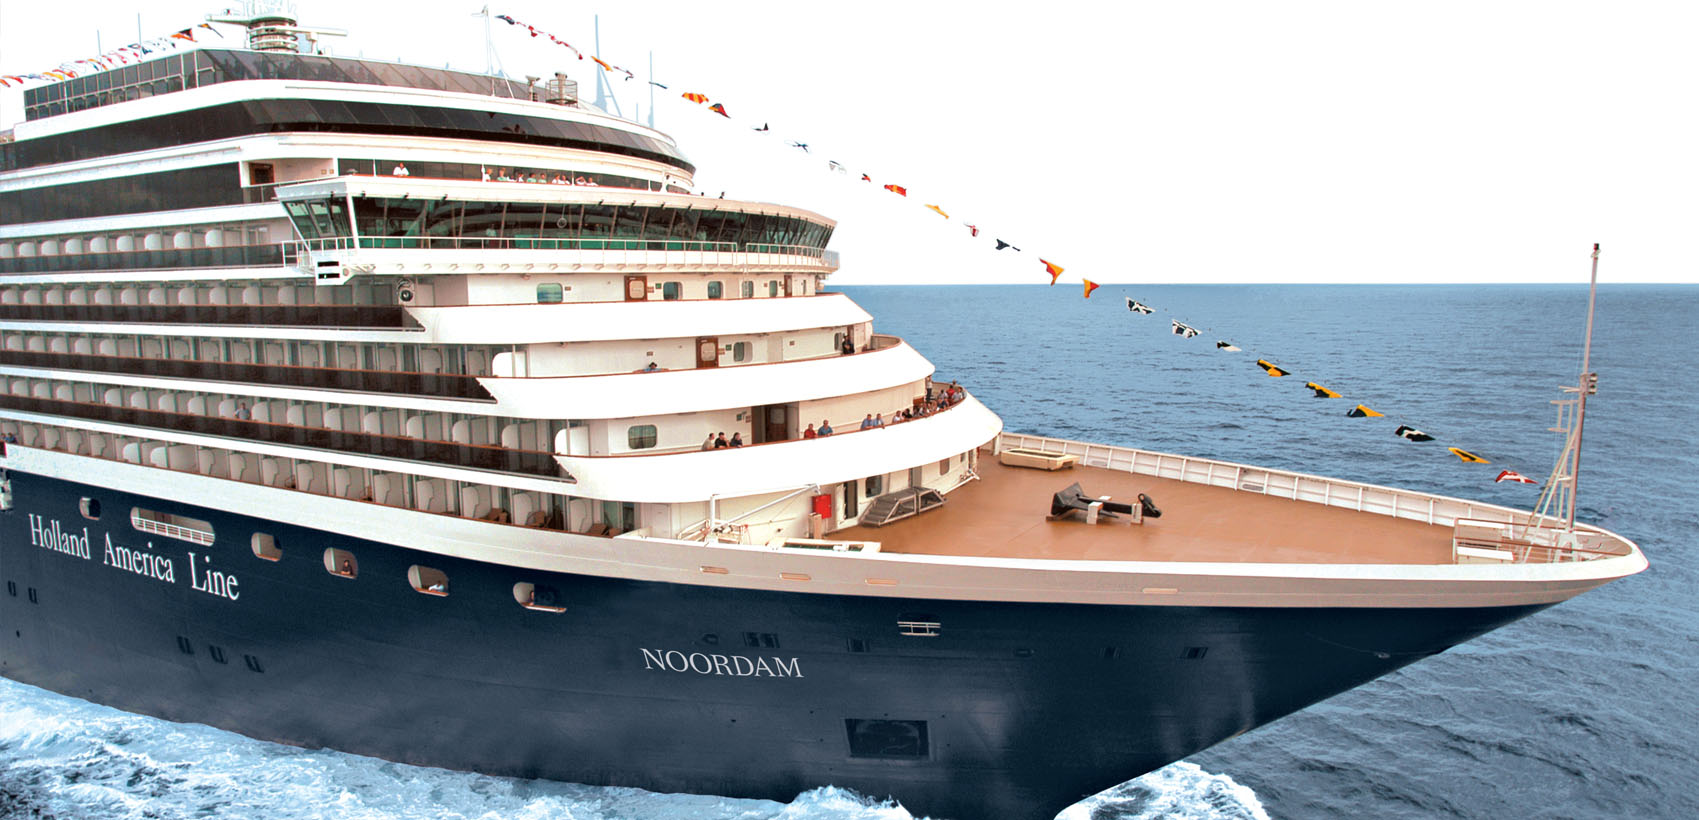 Why Not Now with Holland America